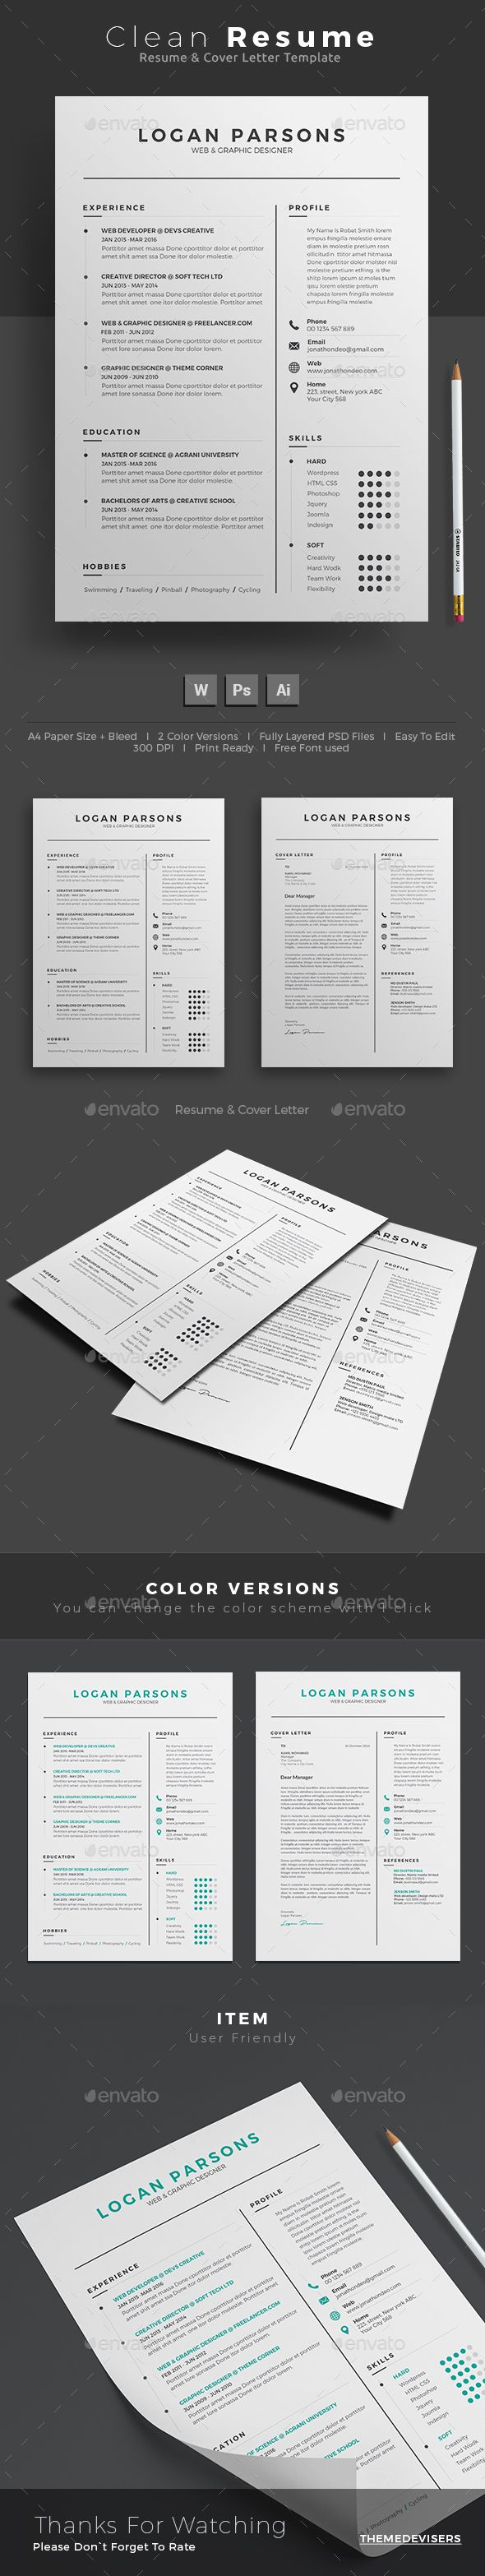 Resume Template PSD, AI Illustrator, MS Word. Download here: https://graphicriver.net/item/resume/17486554?ref=ksioks